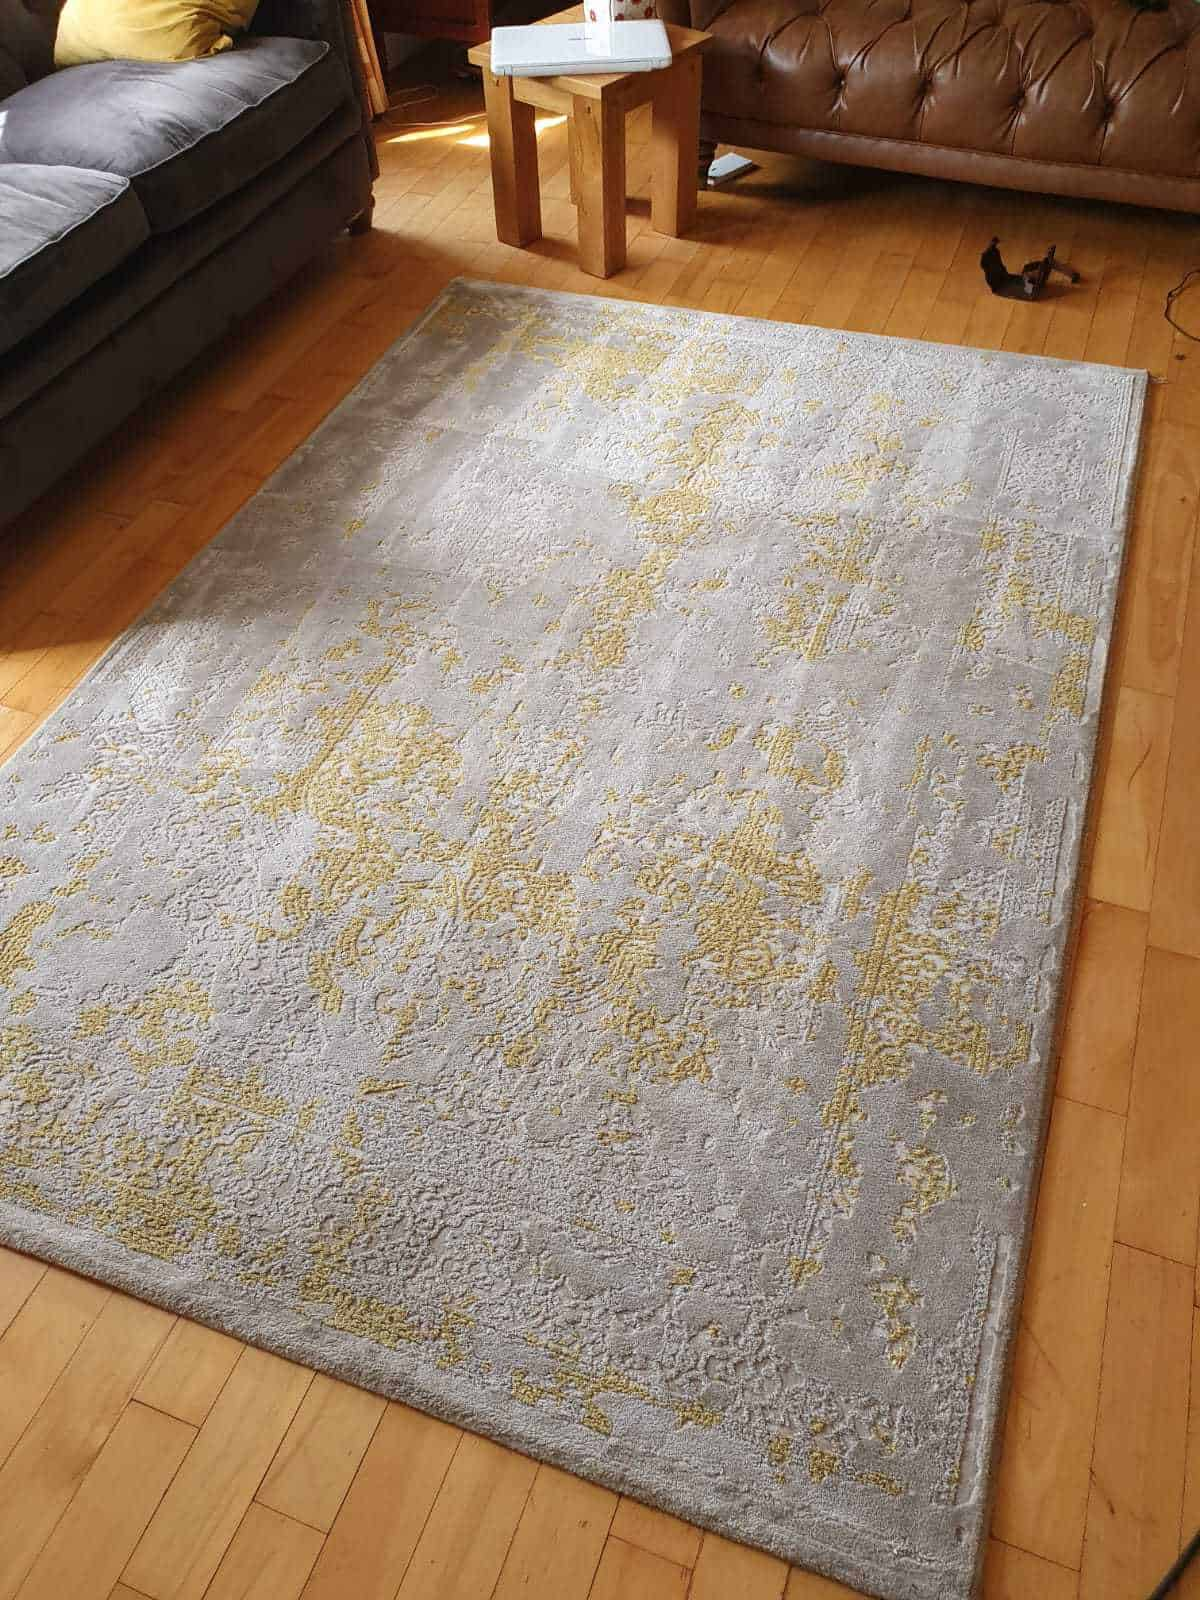 After photo of a recent rug cleaning job